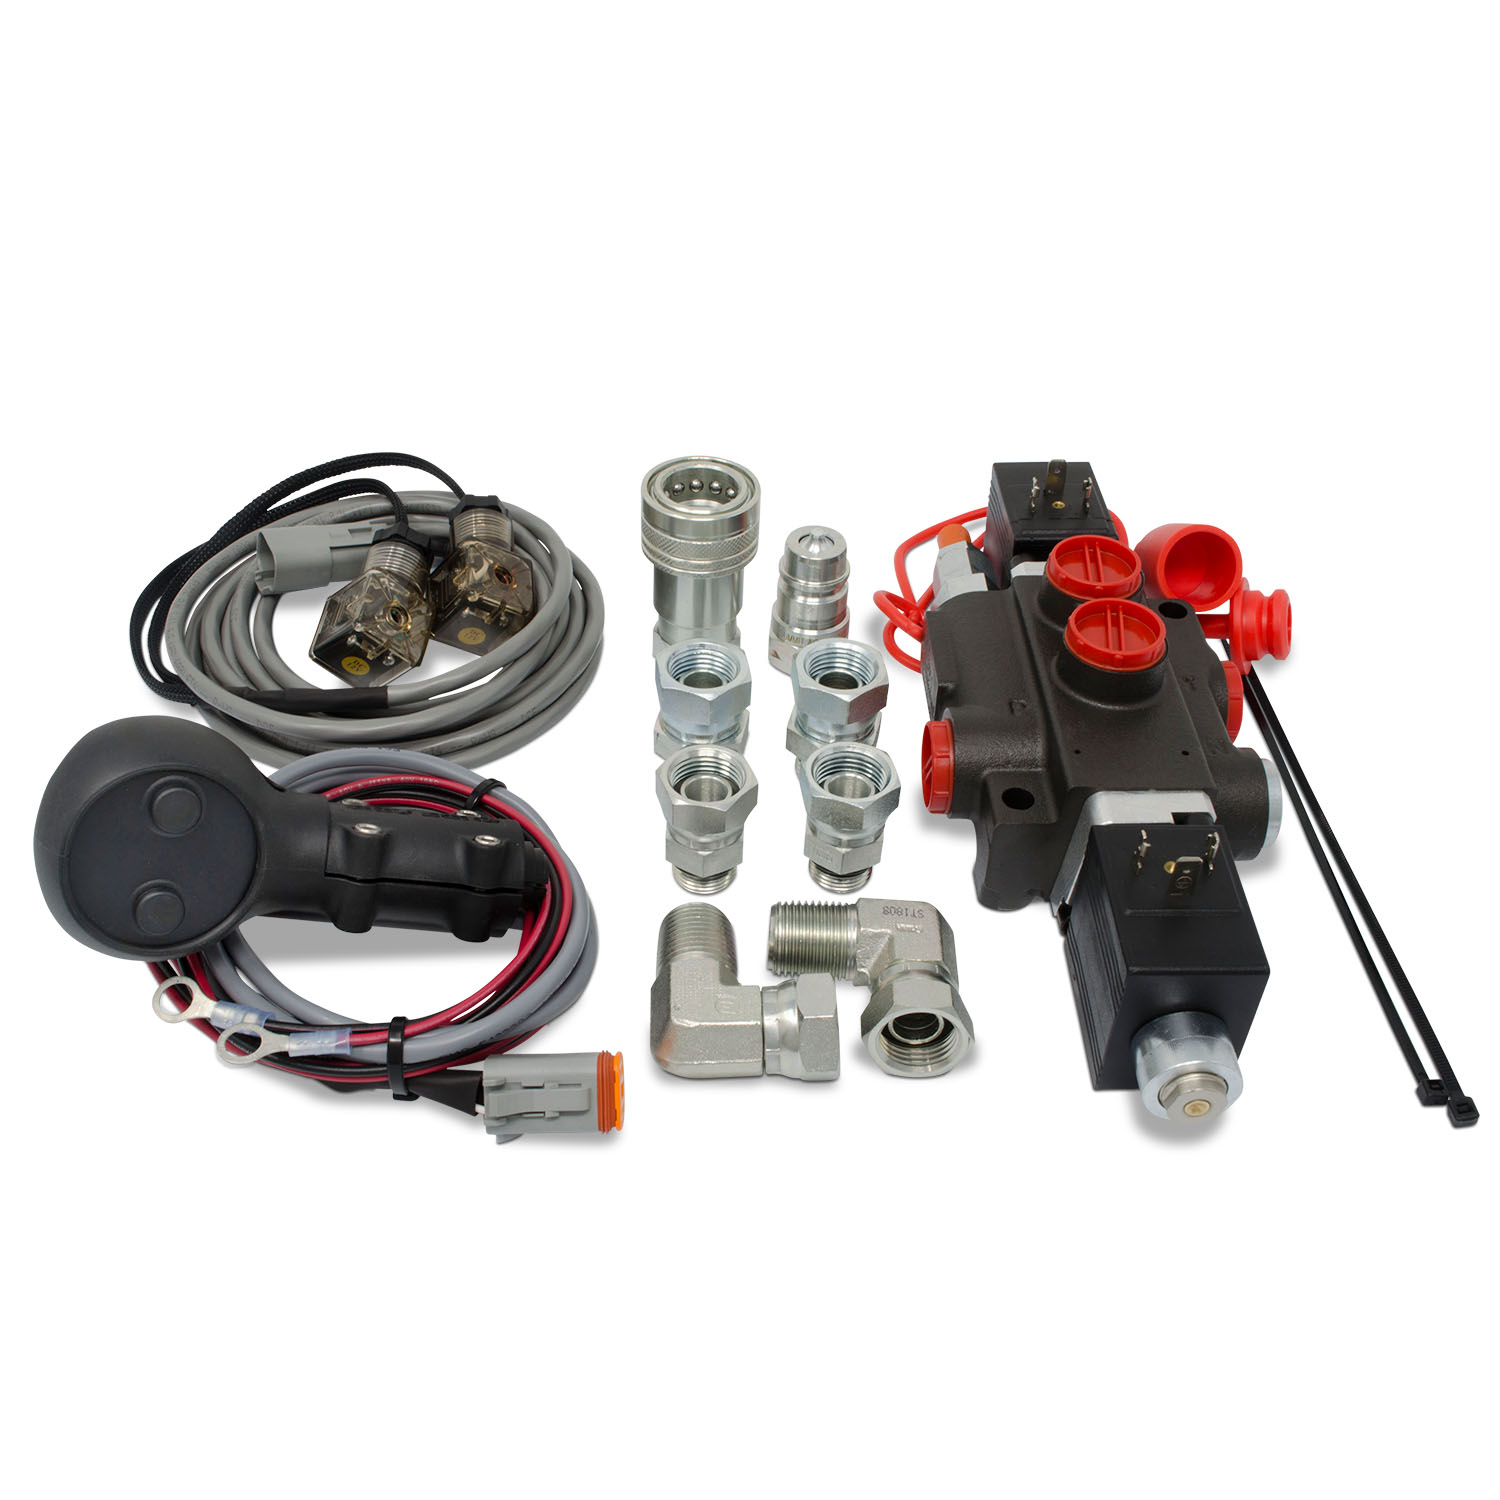 Hydraulic Third Function Valve Kit w/ Joystick Handle for Tractor/Loader,  13 GPM